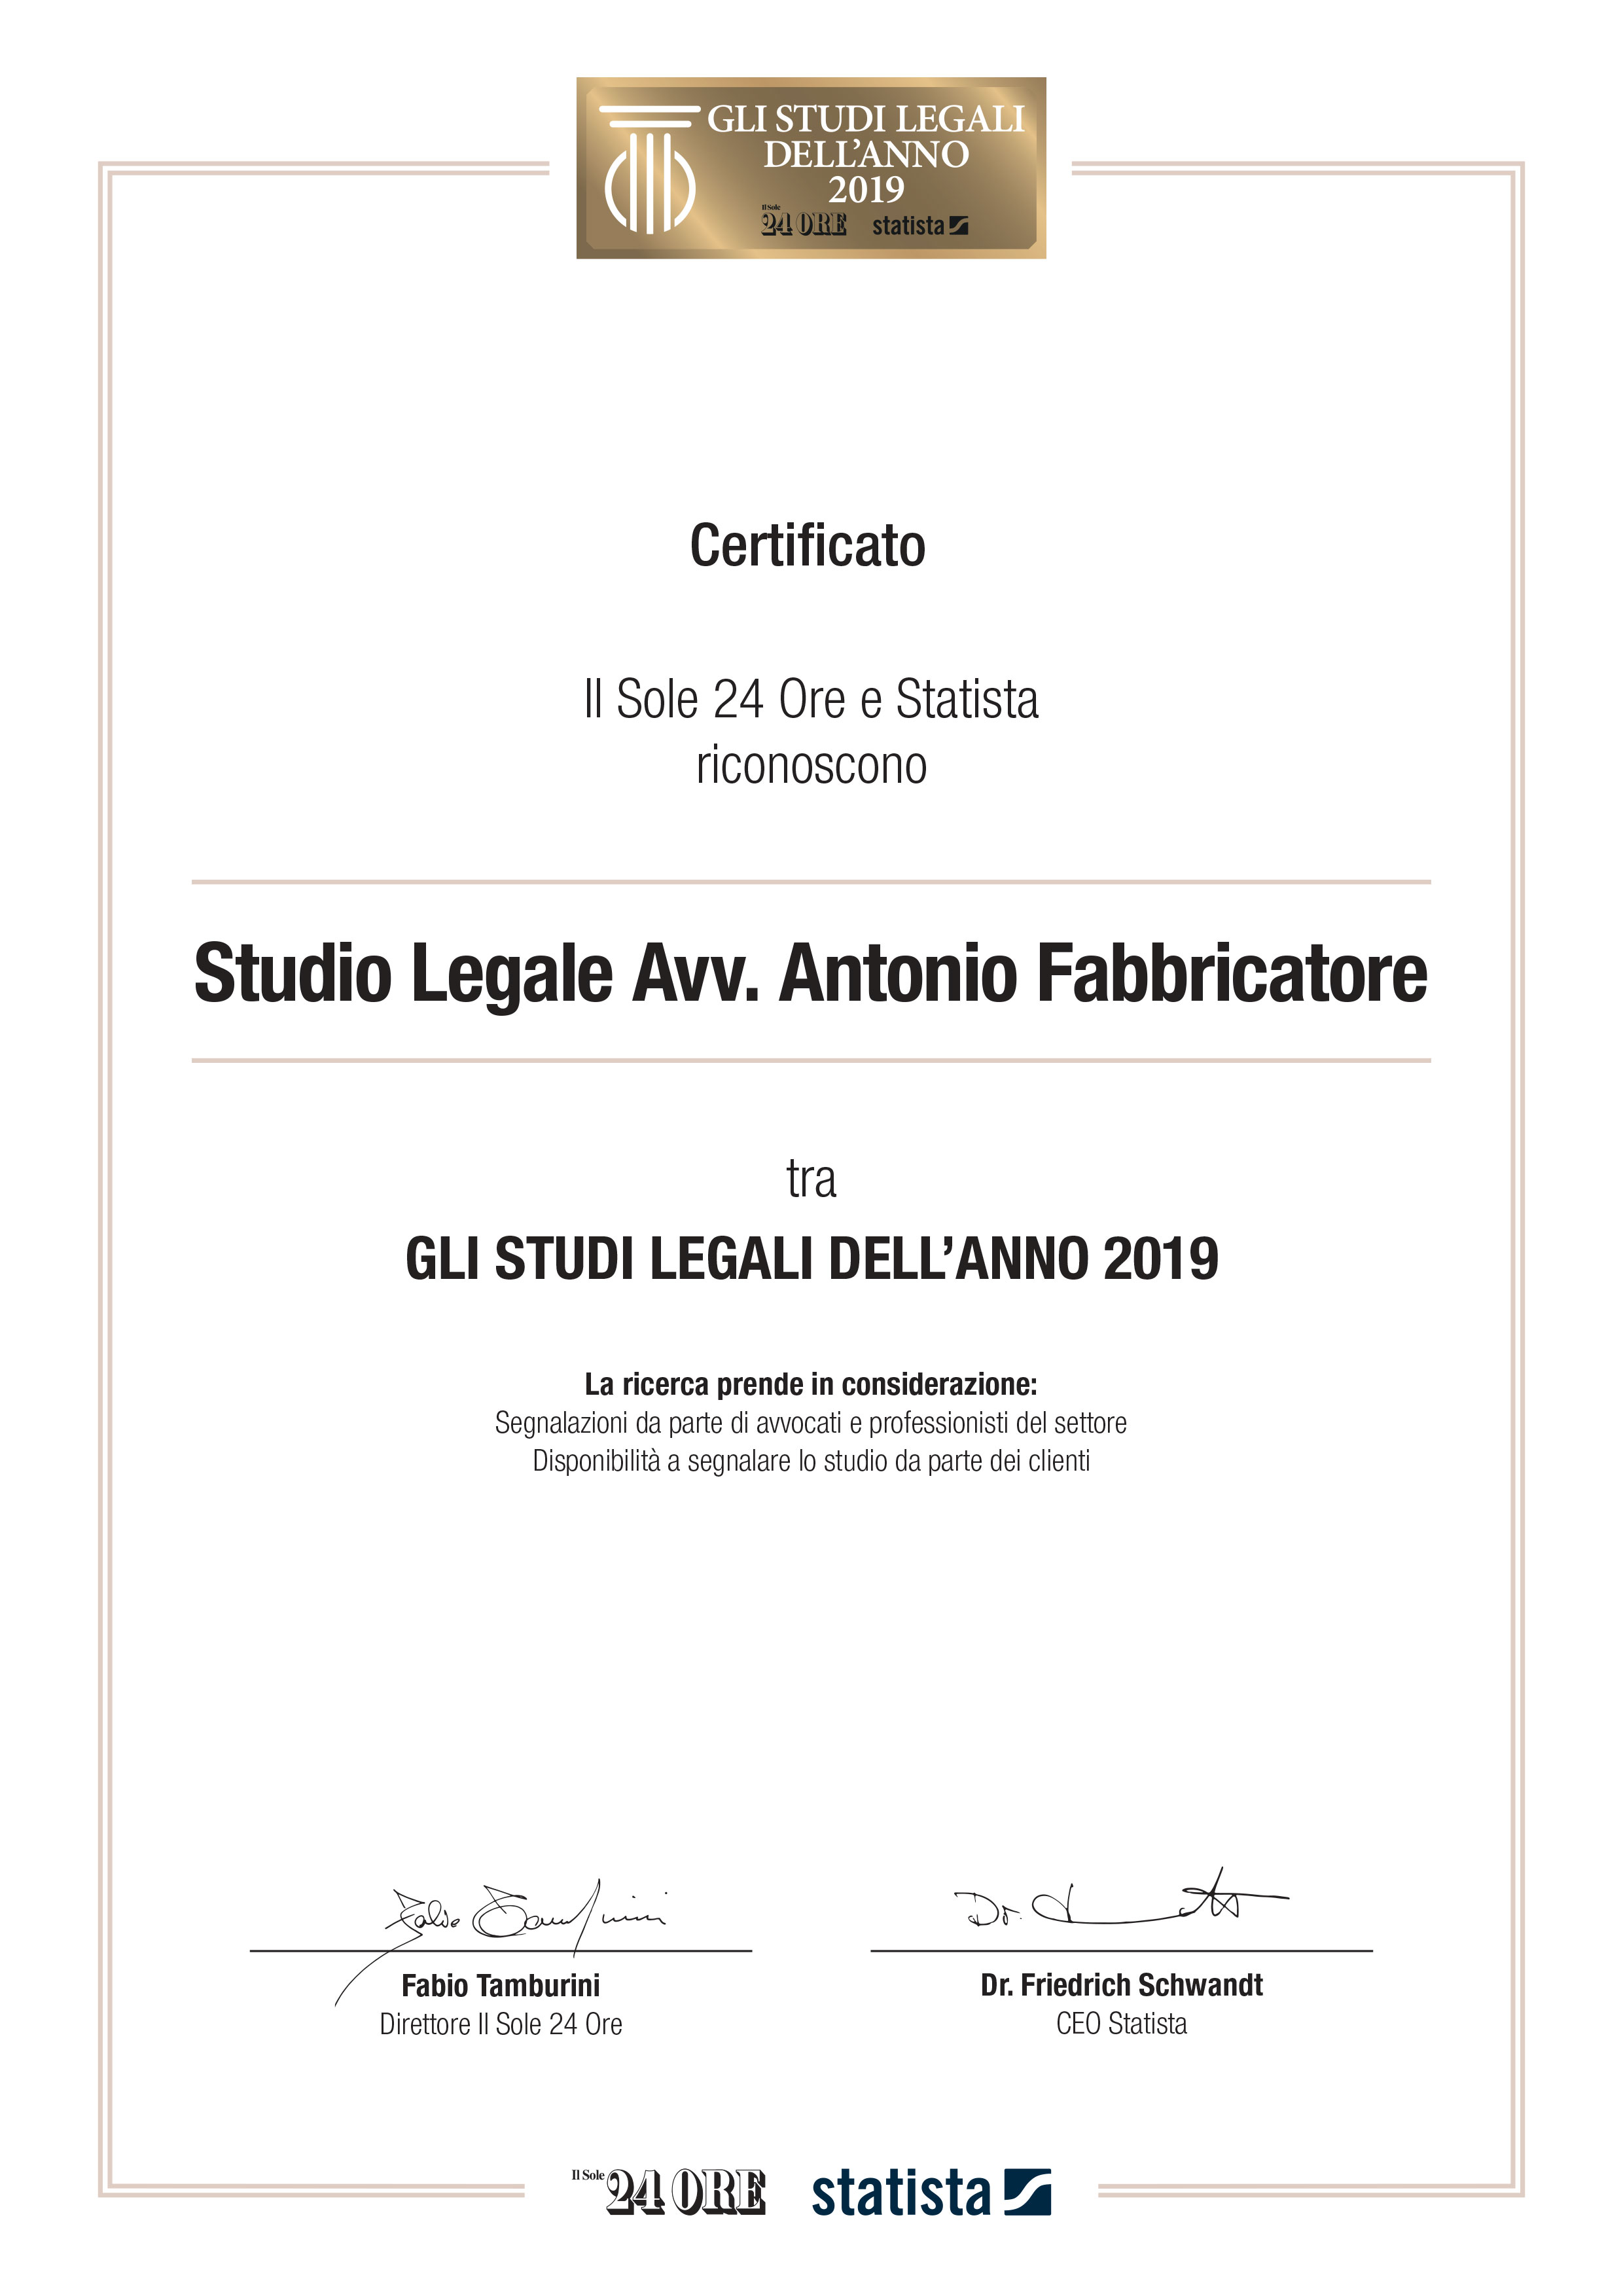 AFVision - Certificate of best law firm